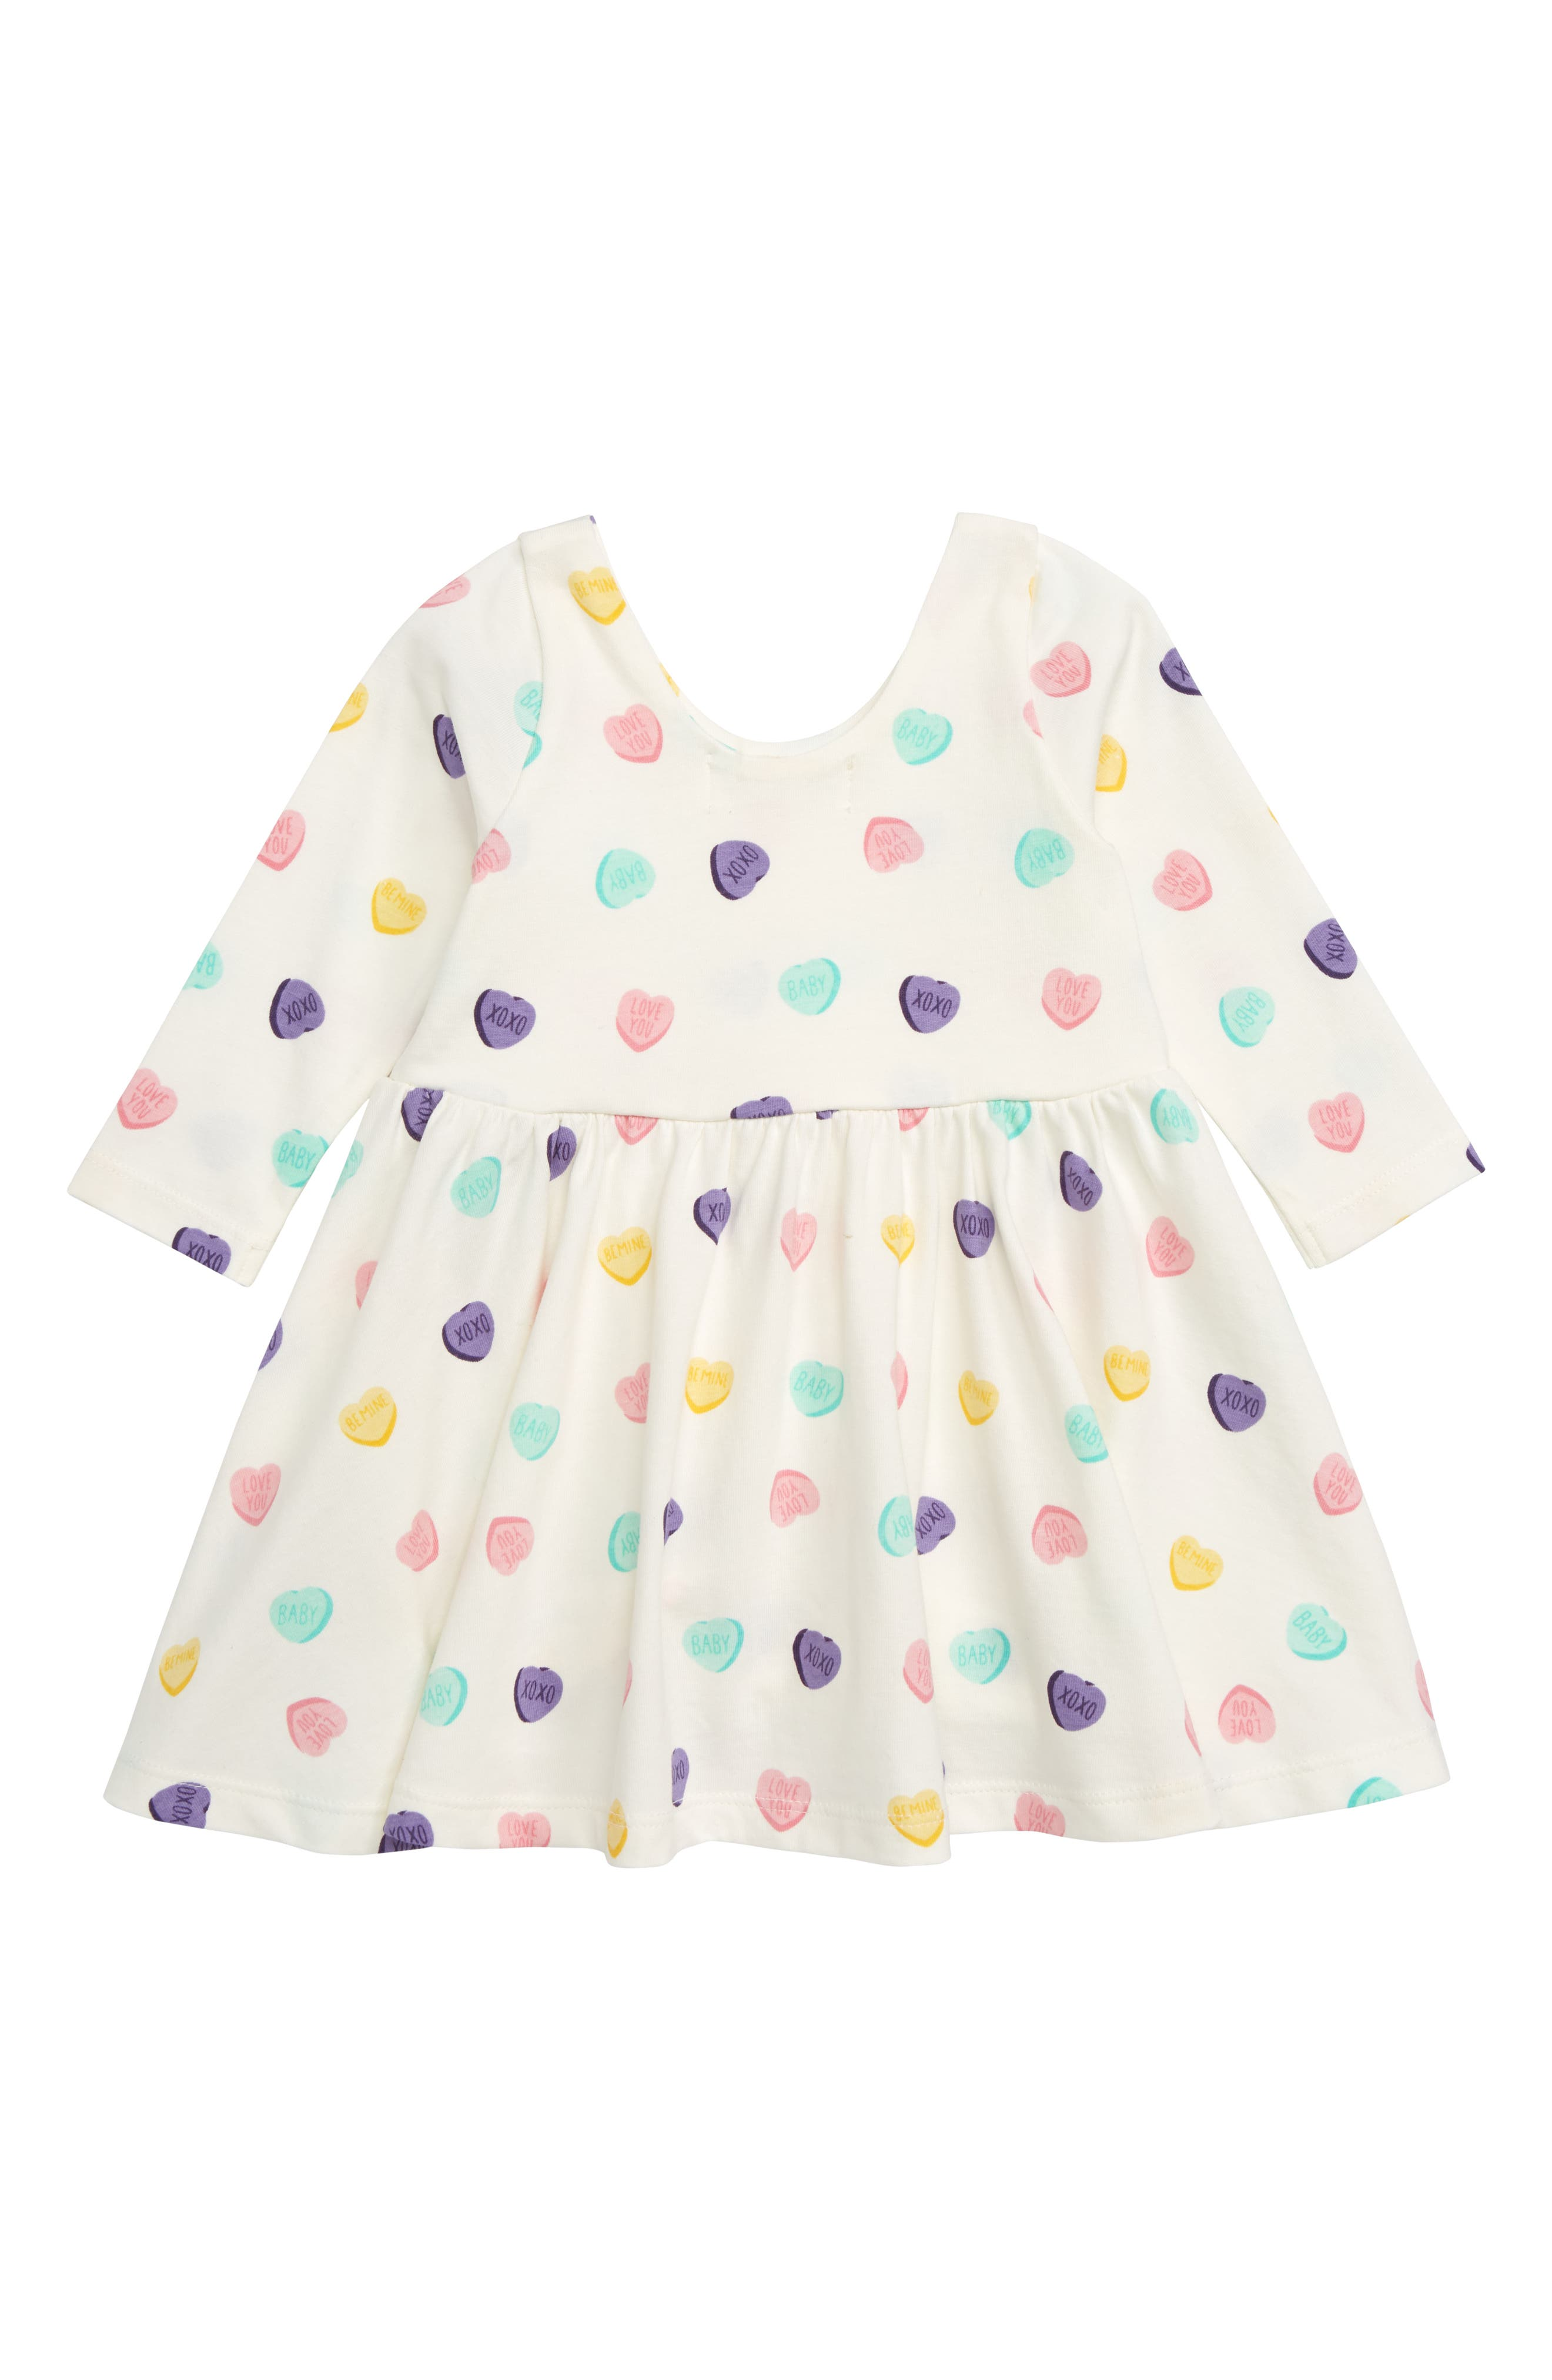 Let's Dance Sweetheart Organic Stretch Cotton Dress,                             Alternate thumbnail 2, color,                             SWEET HEARTS